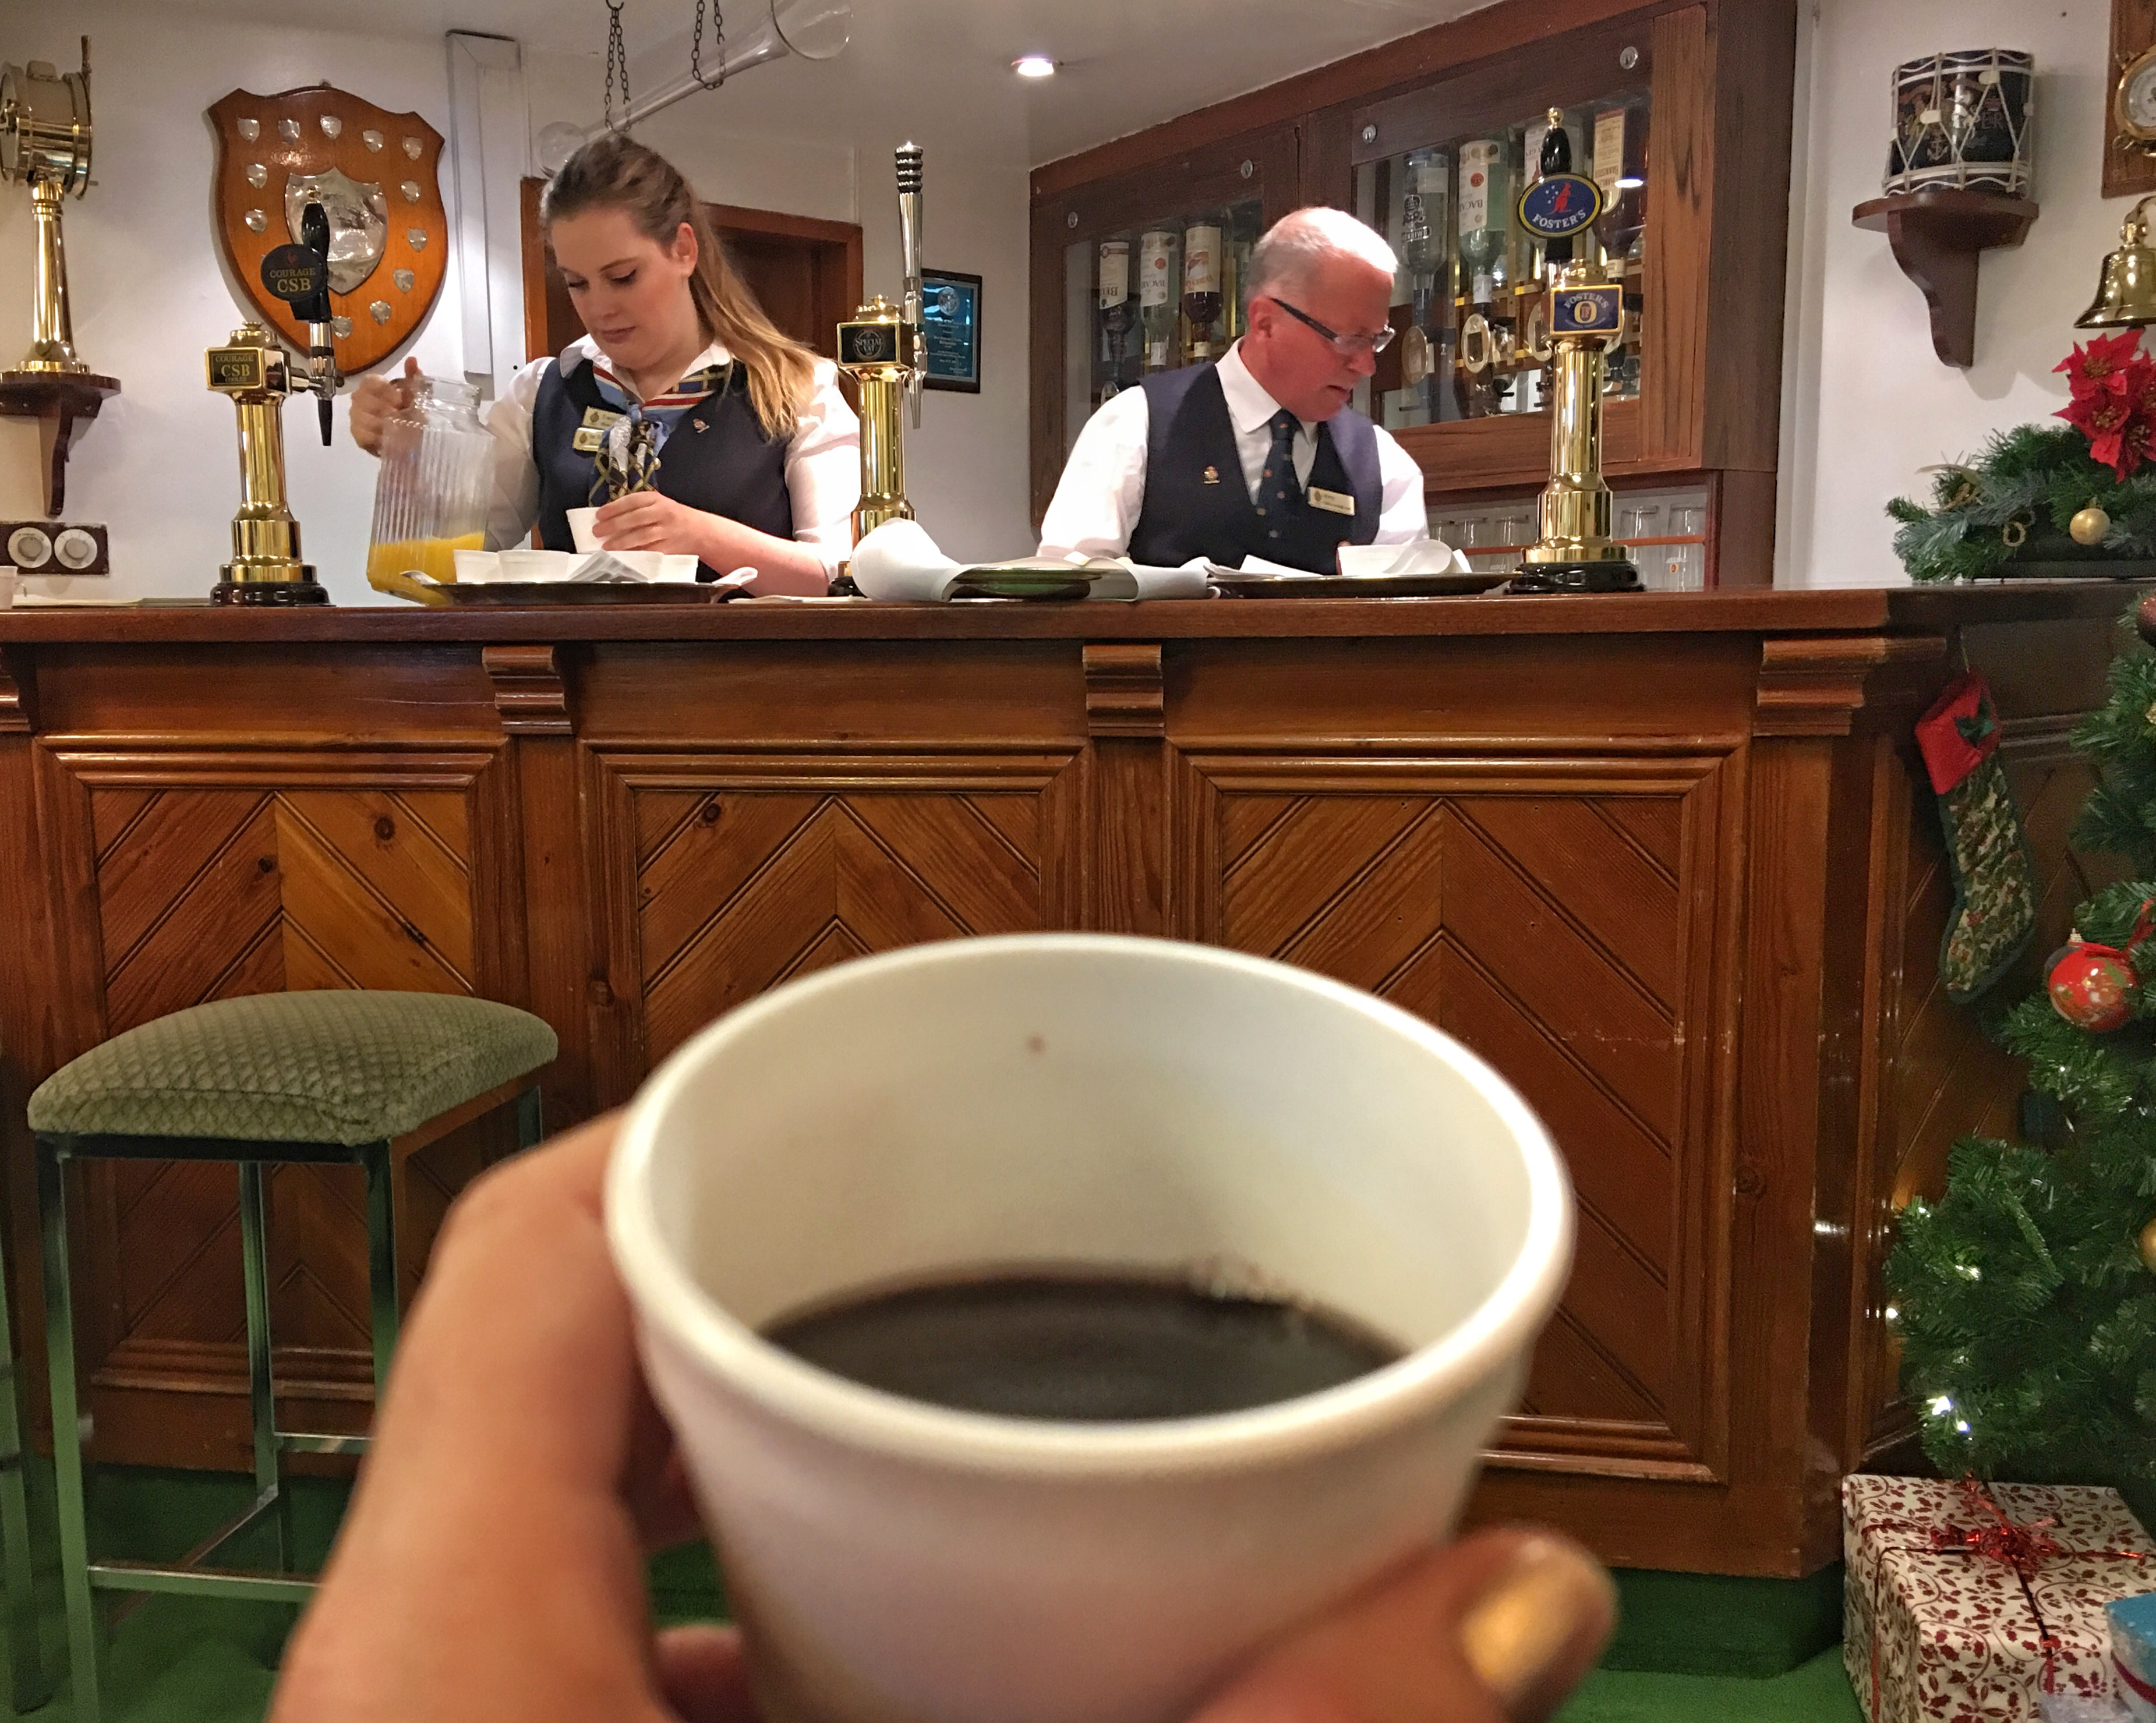 A Tour Of The Royal Yacht Britannia Gives A Fascinating